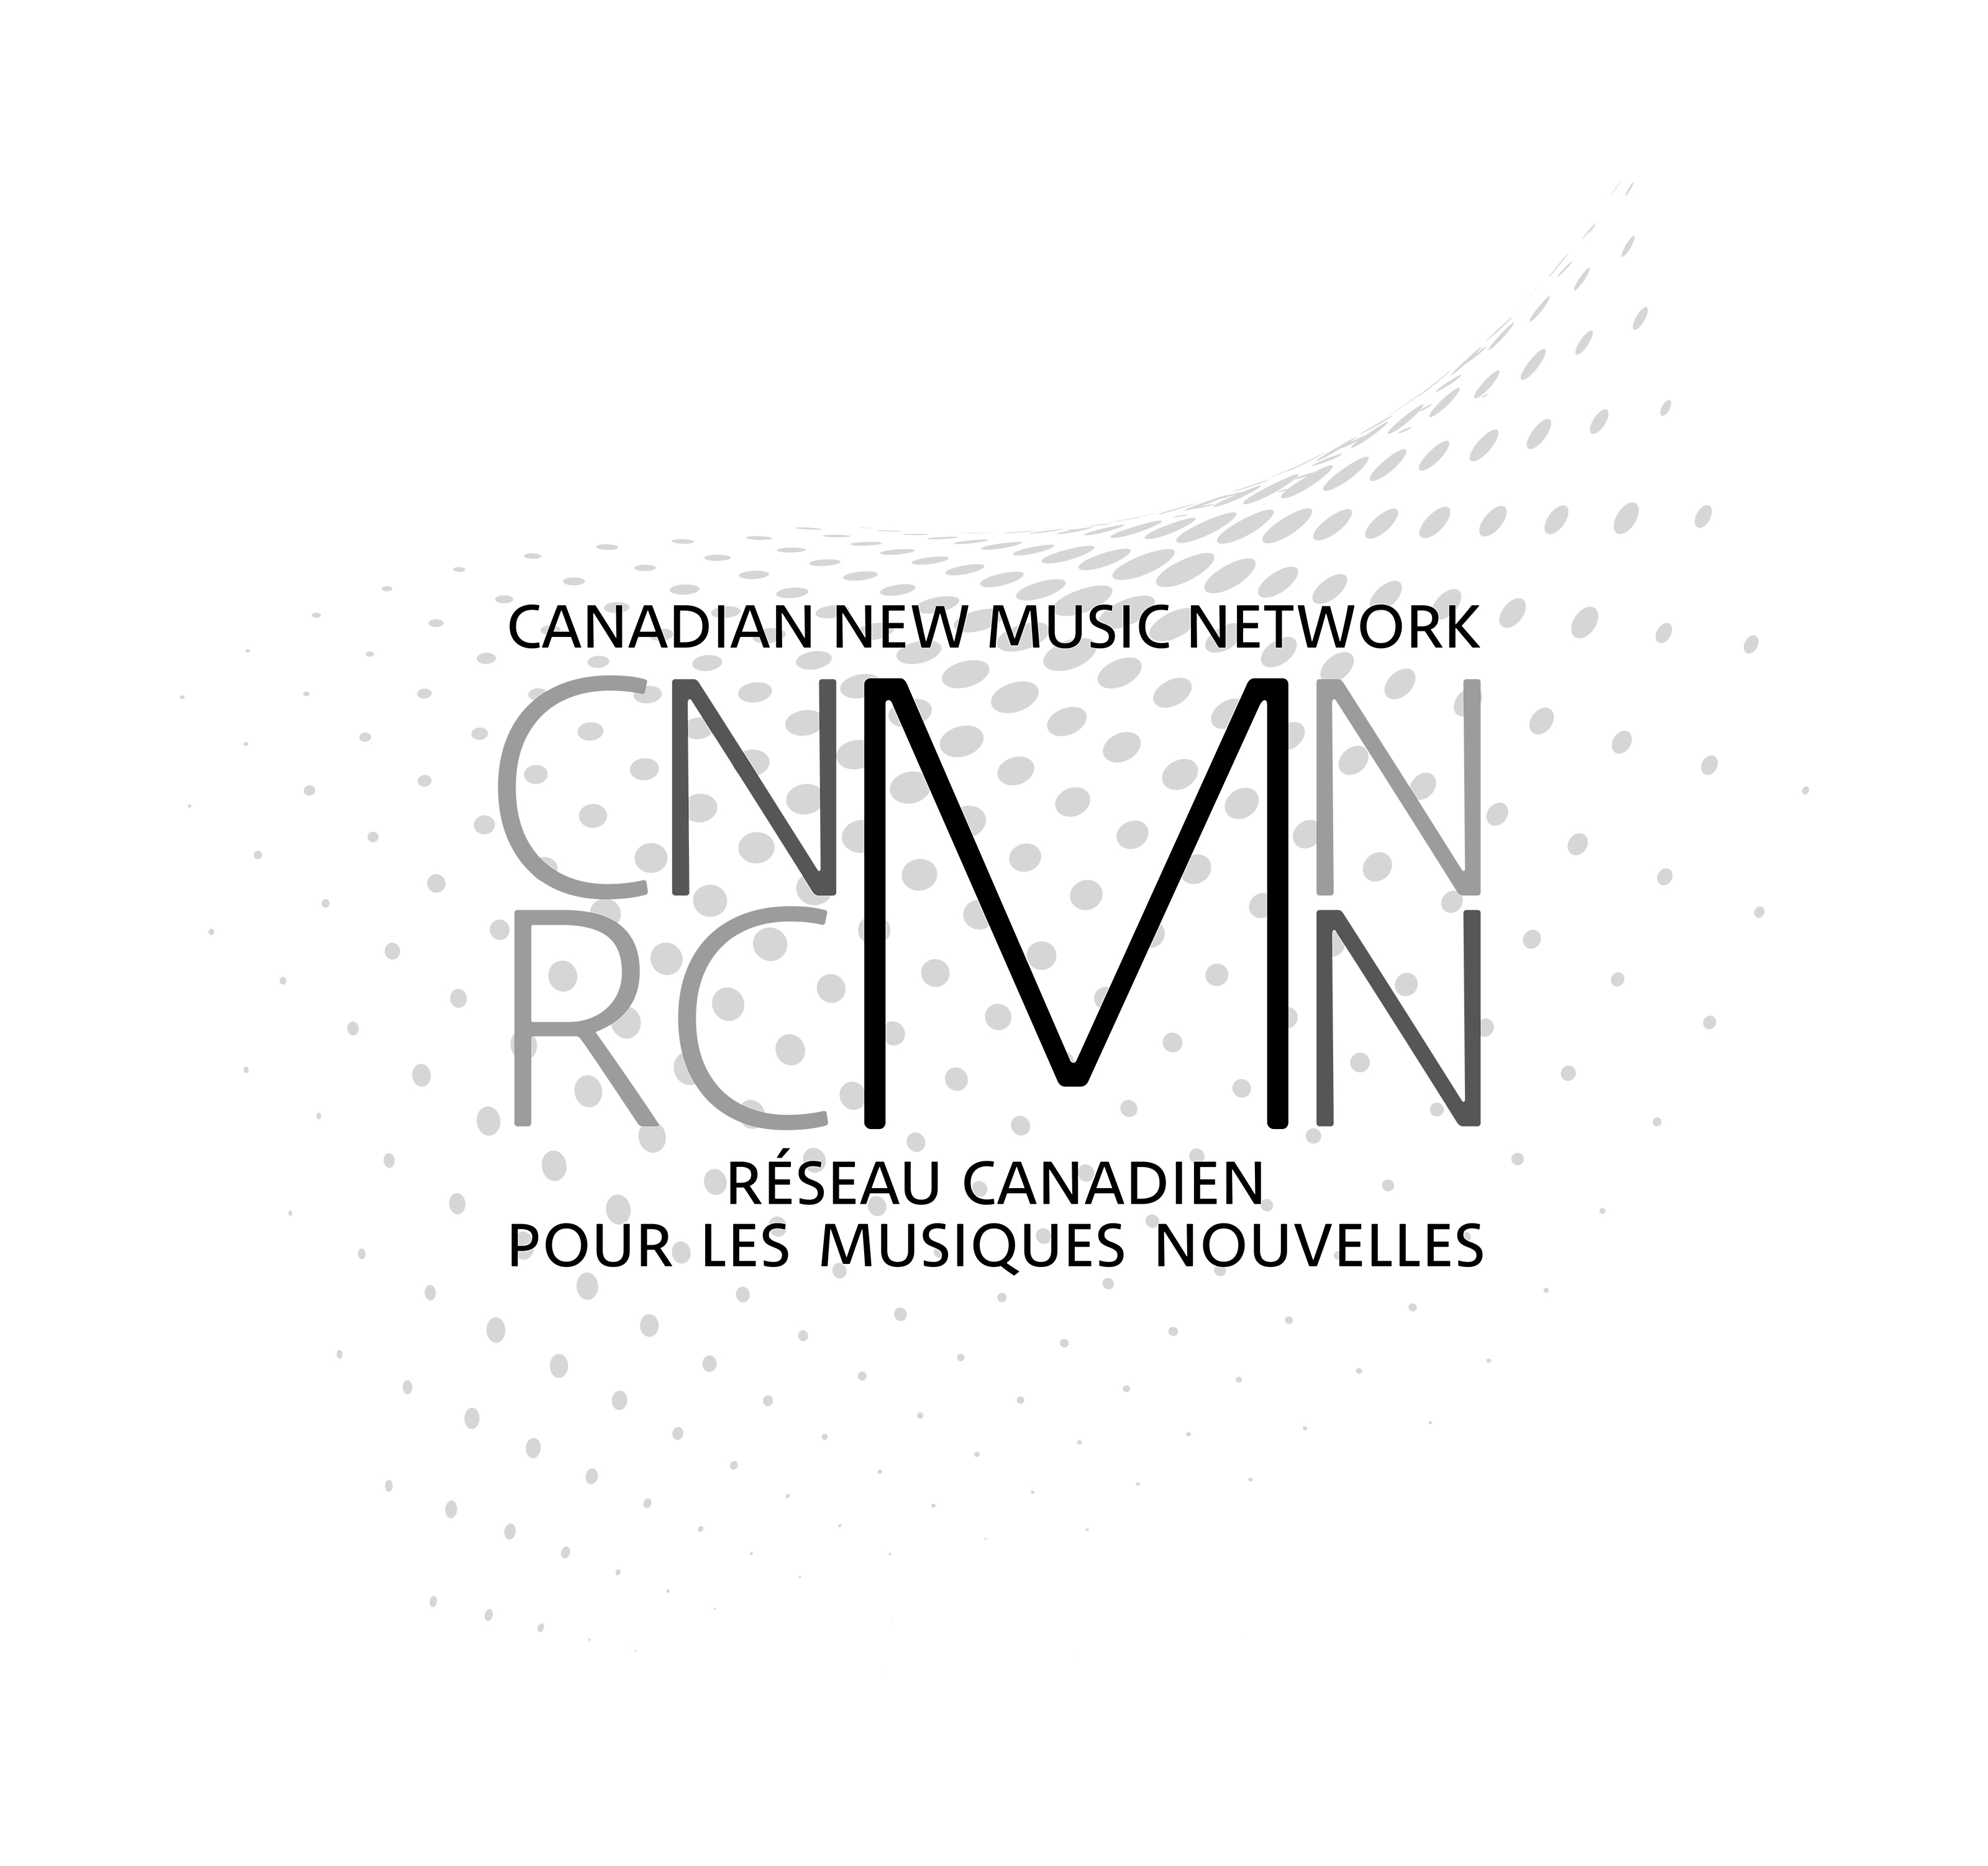 Logo of the Canadian Ntework for New Music